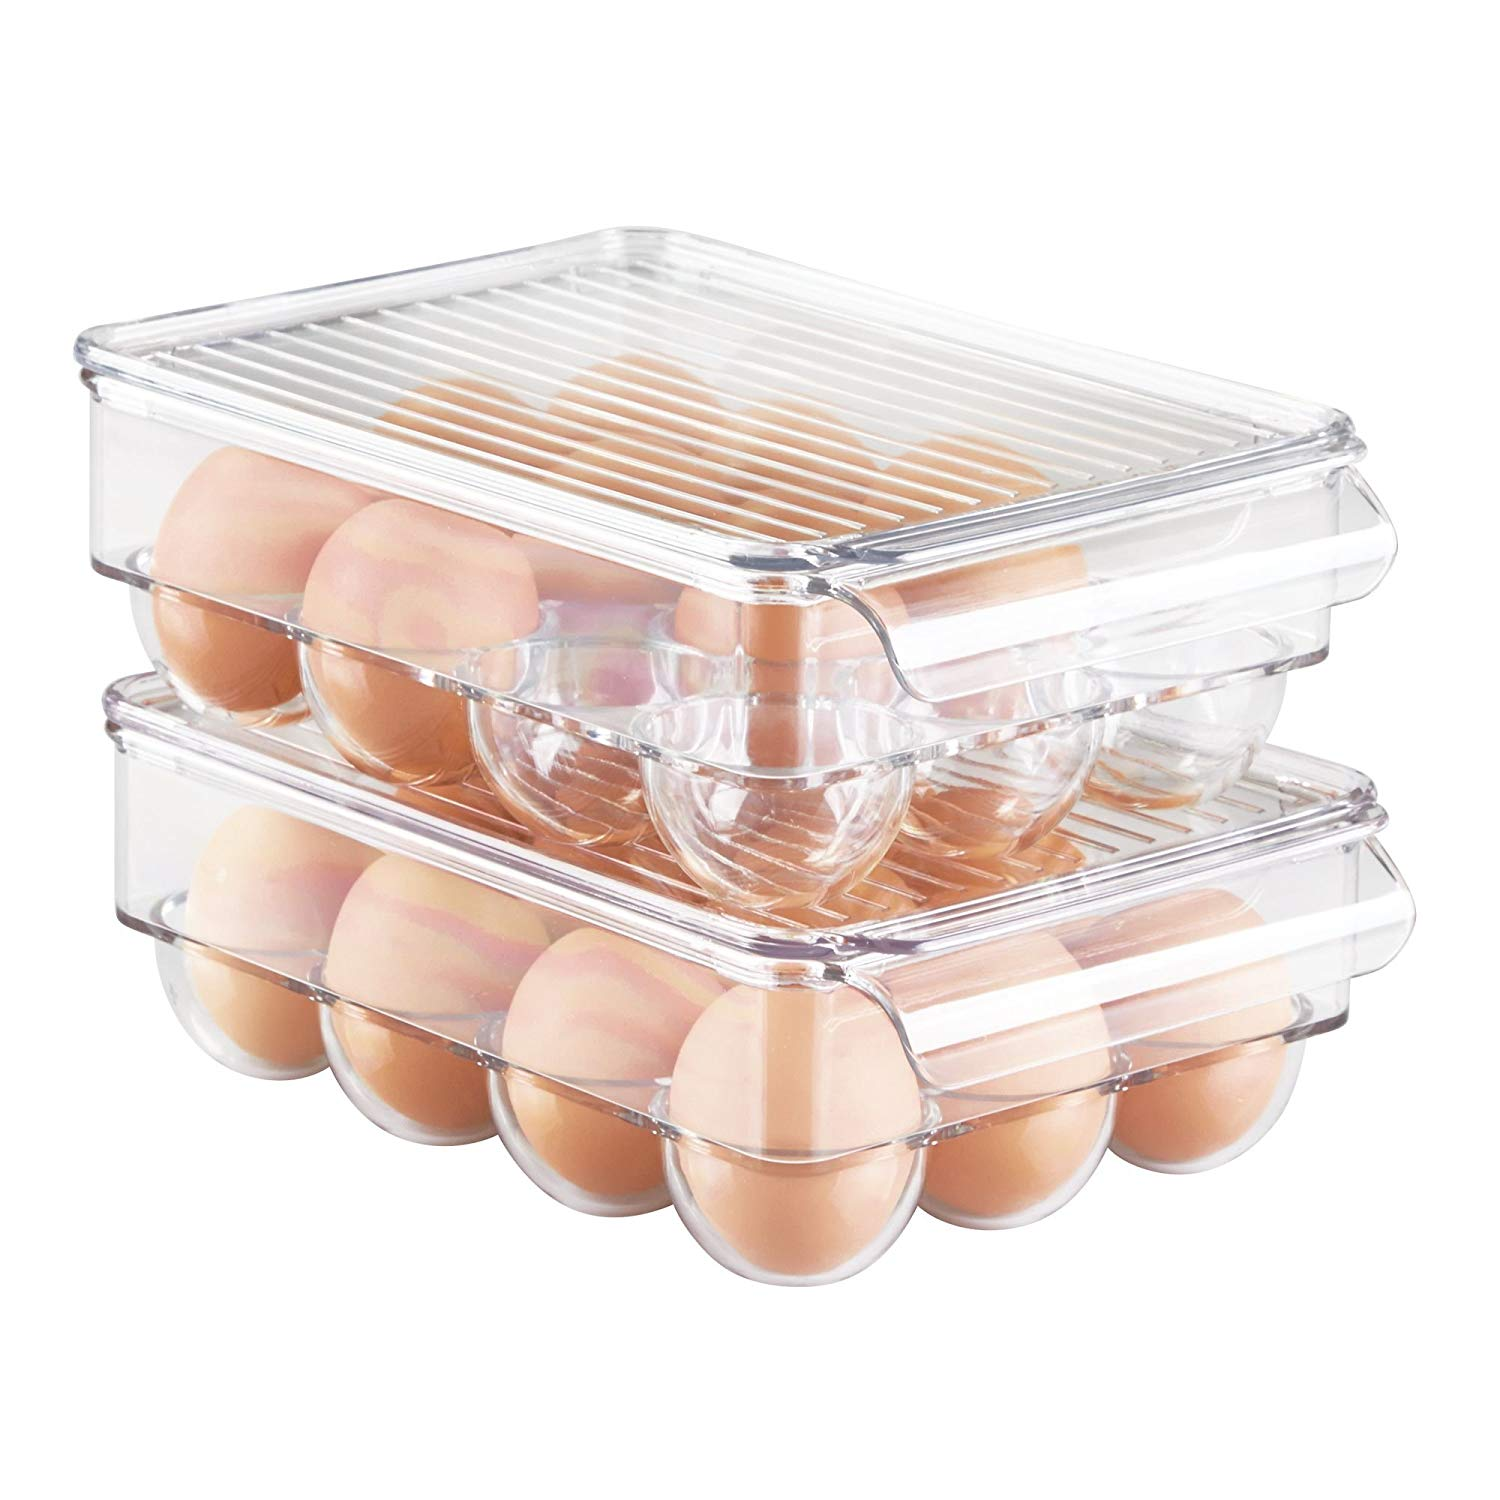 mDesign Stackable Plastic Covered Egg Tray Holder, Storage Container and Organizer for Refrigerator, Carrier Bin with Lid and Handle - Holds 12 Eggs - Pack of 2, Clear